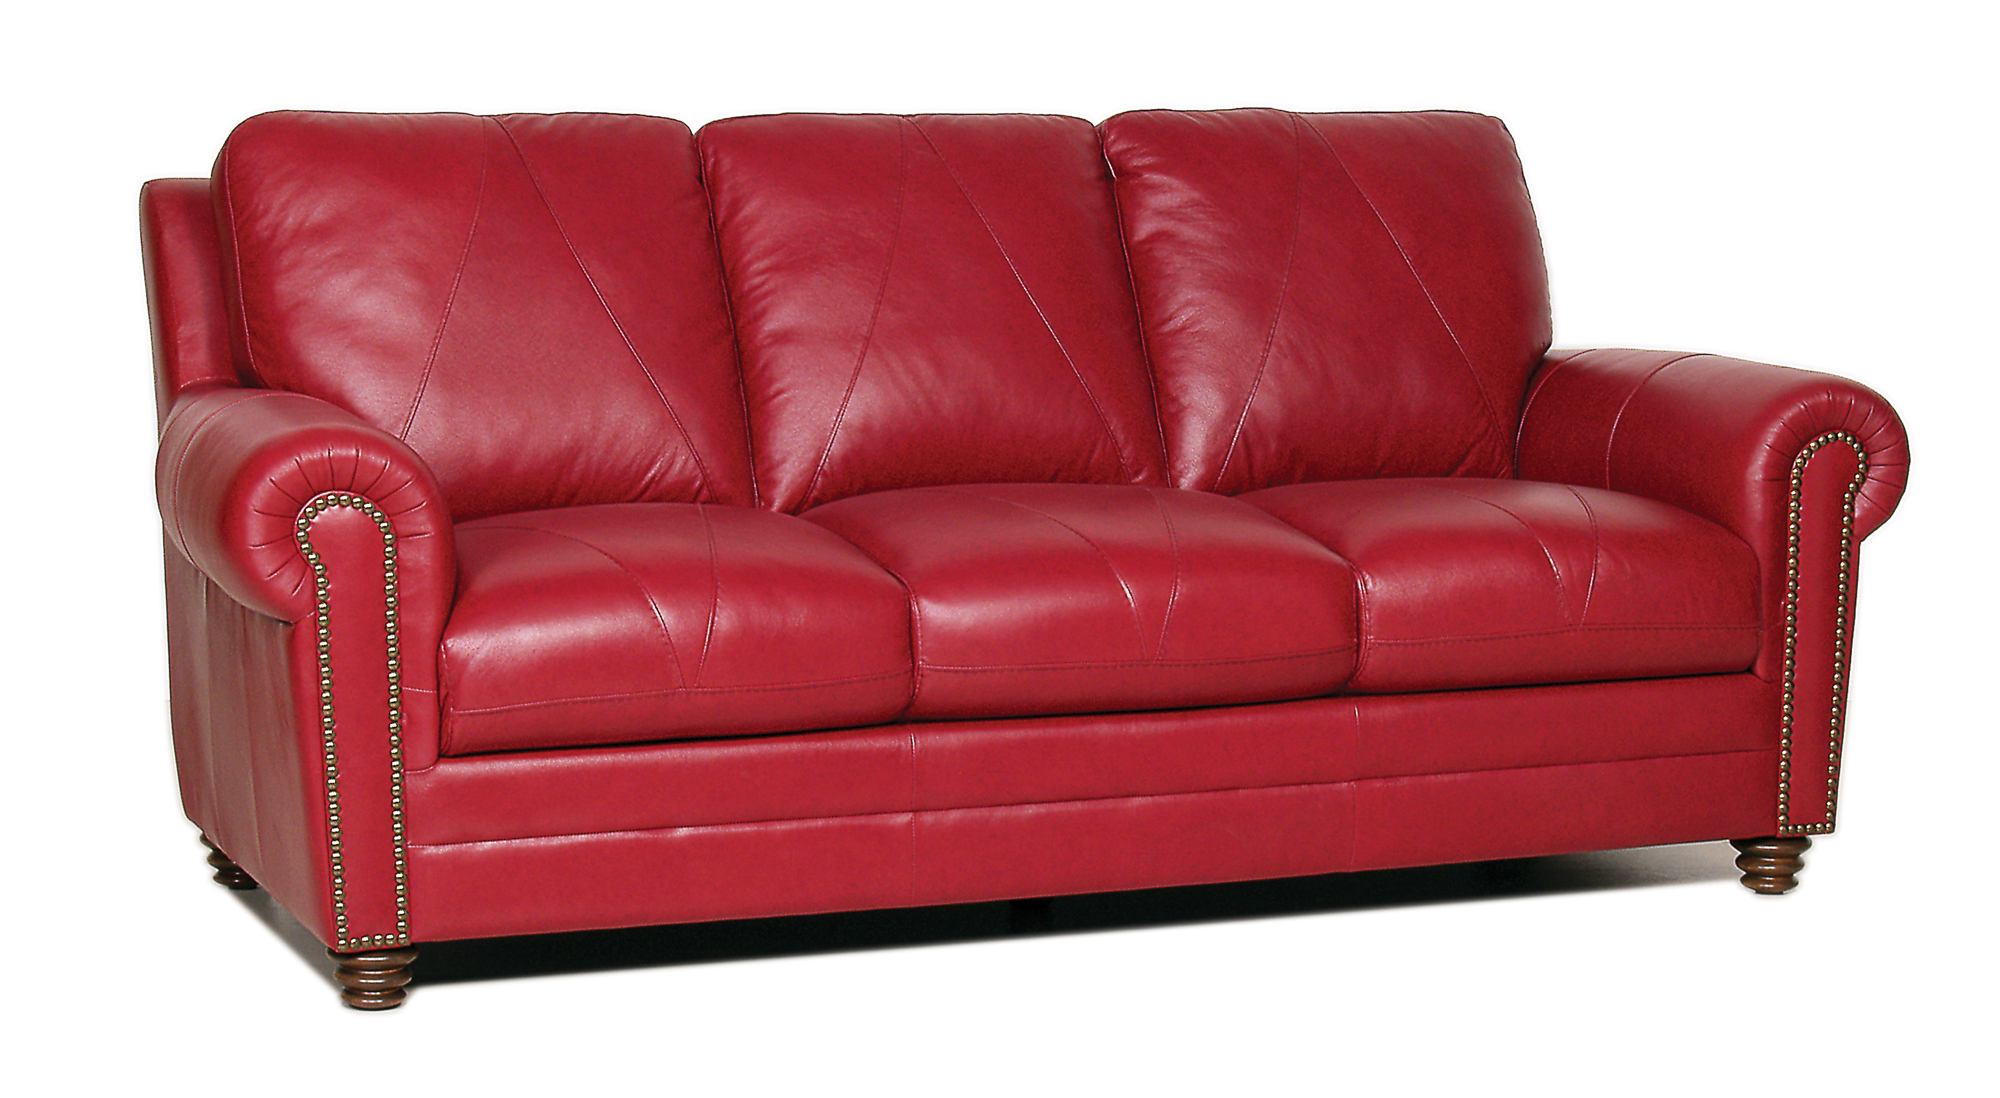 New luke leather weston cherry red italian leather 3pc set sofa and 2 chairs ebay Red sofas and loveseats